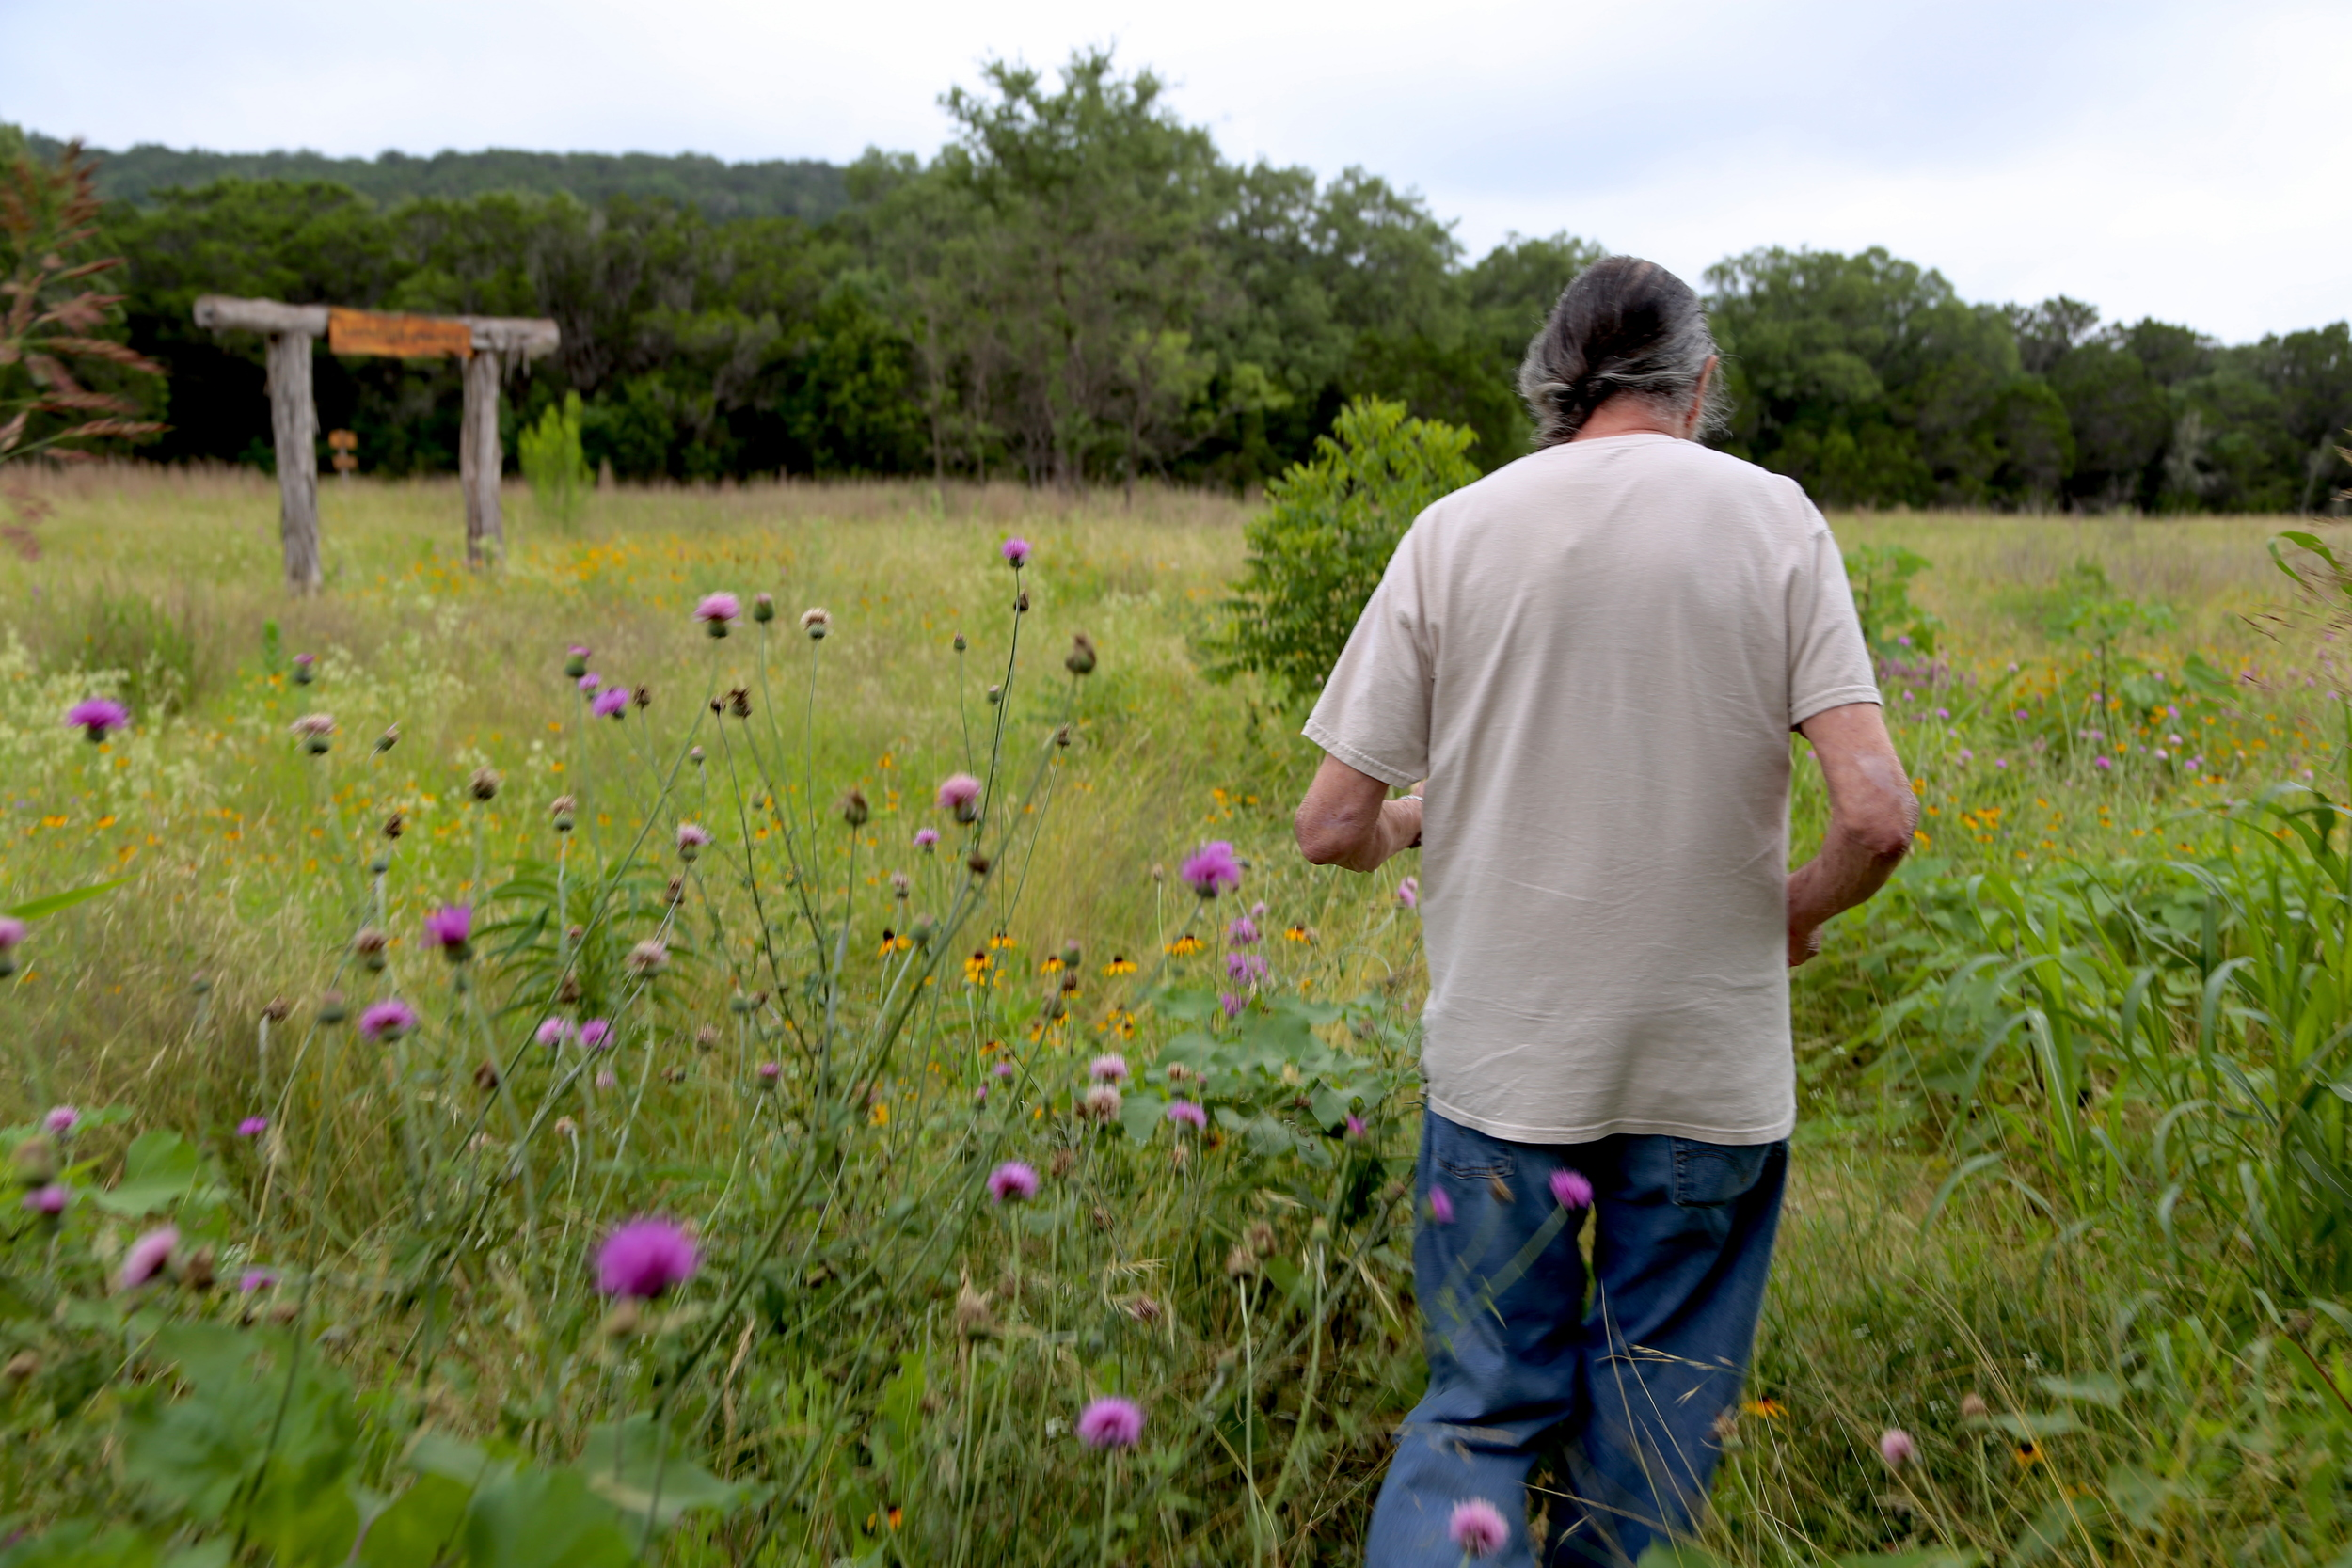 Lonnie Shockley leads me to one of their removal sites in the northwest region of San Antonio.